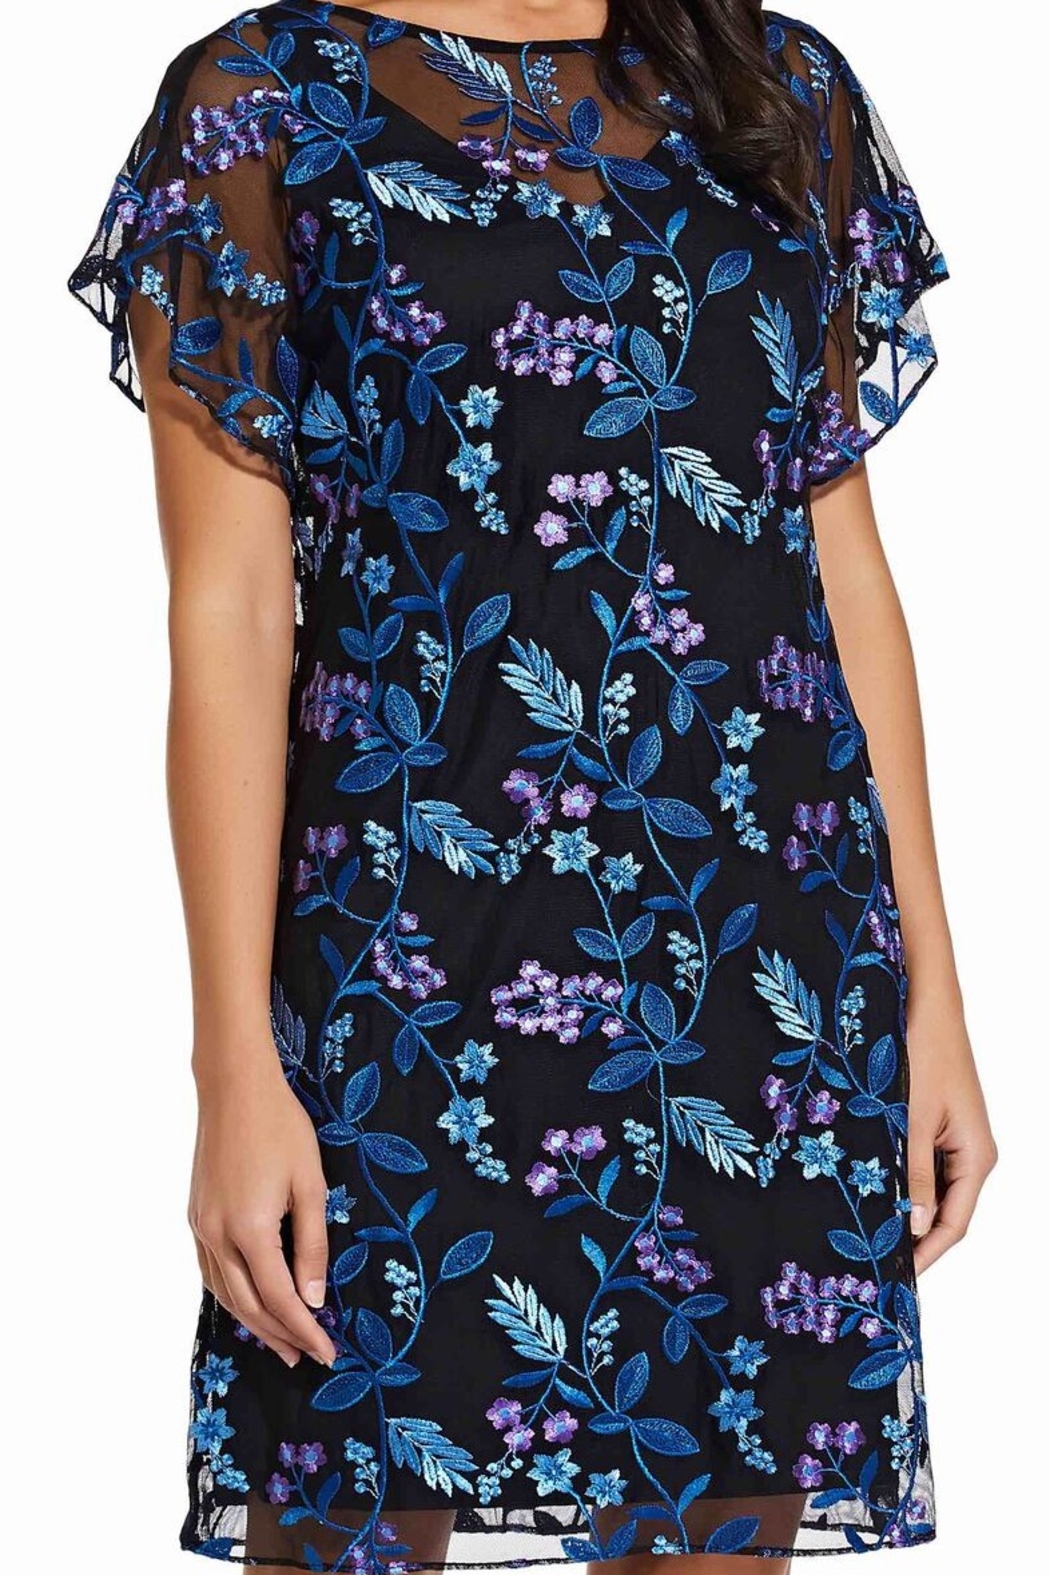 Adrianna Papell Floral Flutter Sleeve Shift Dress - Main Image